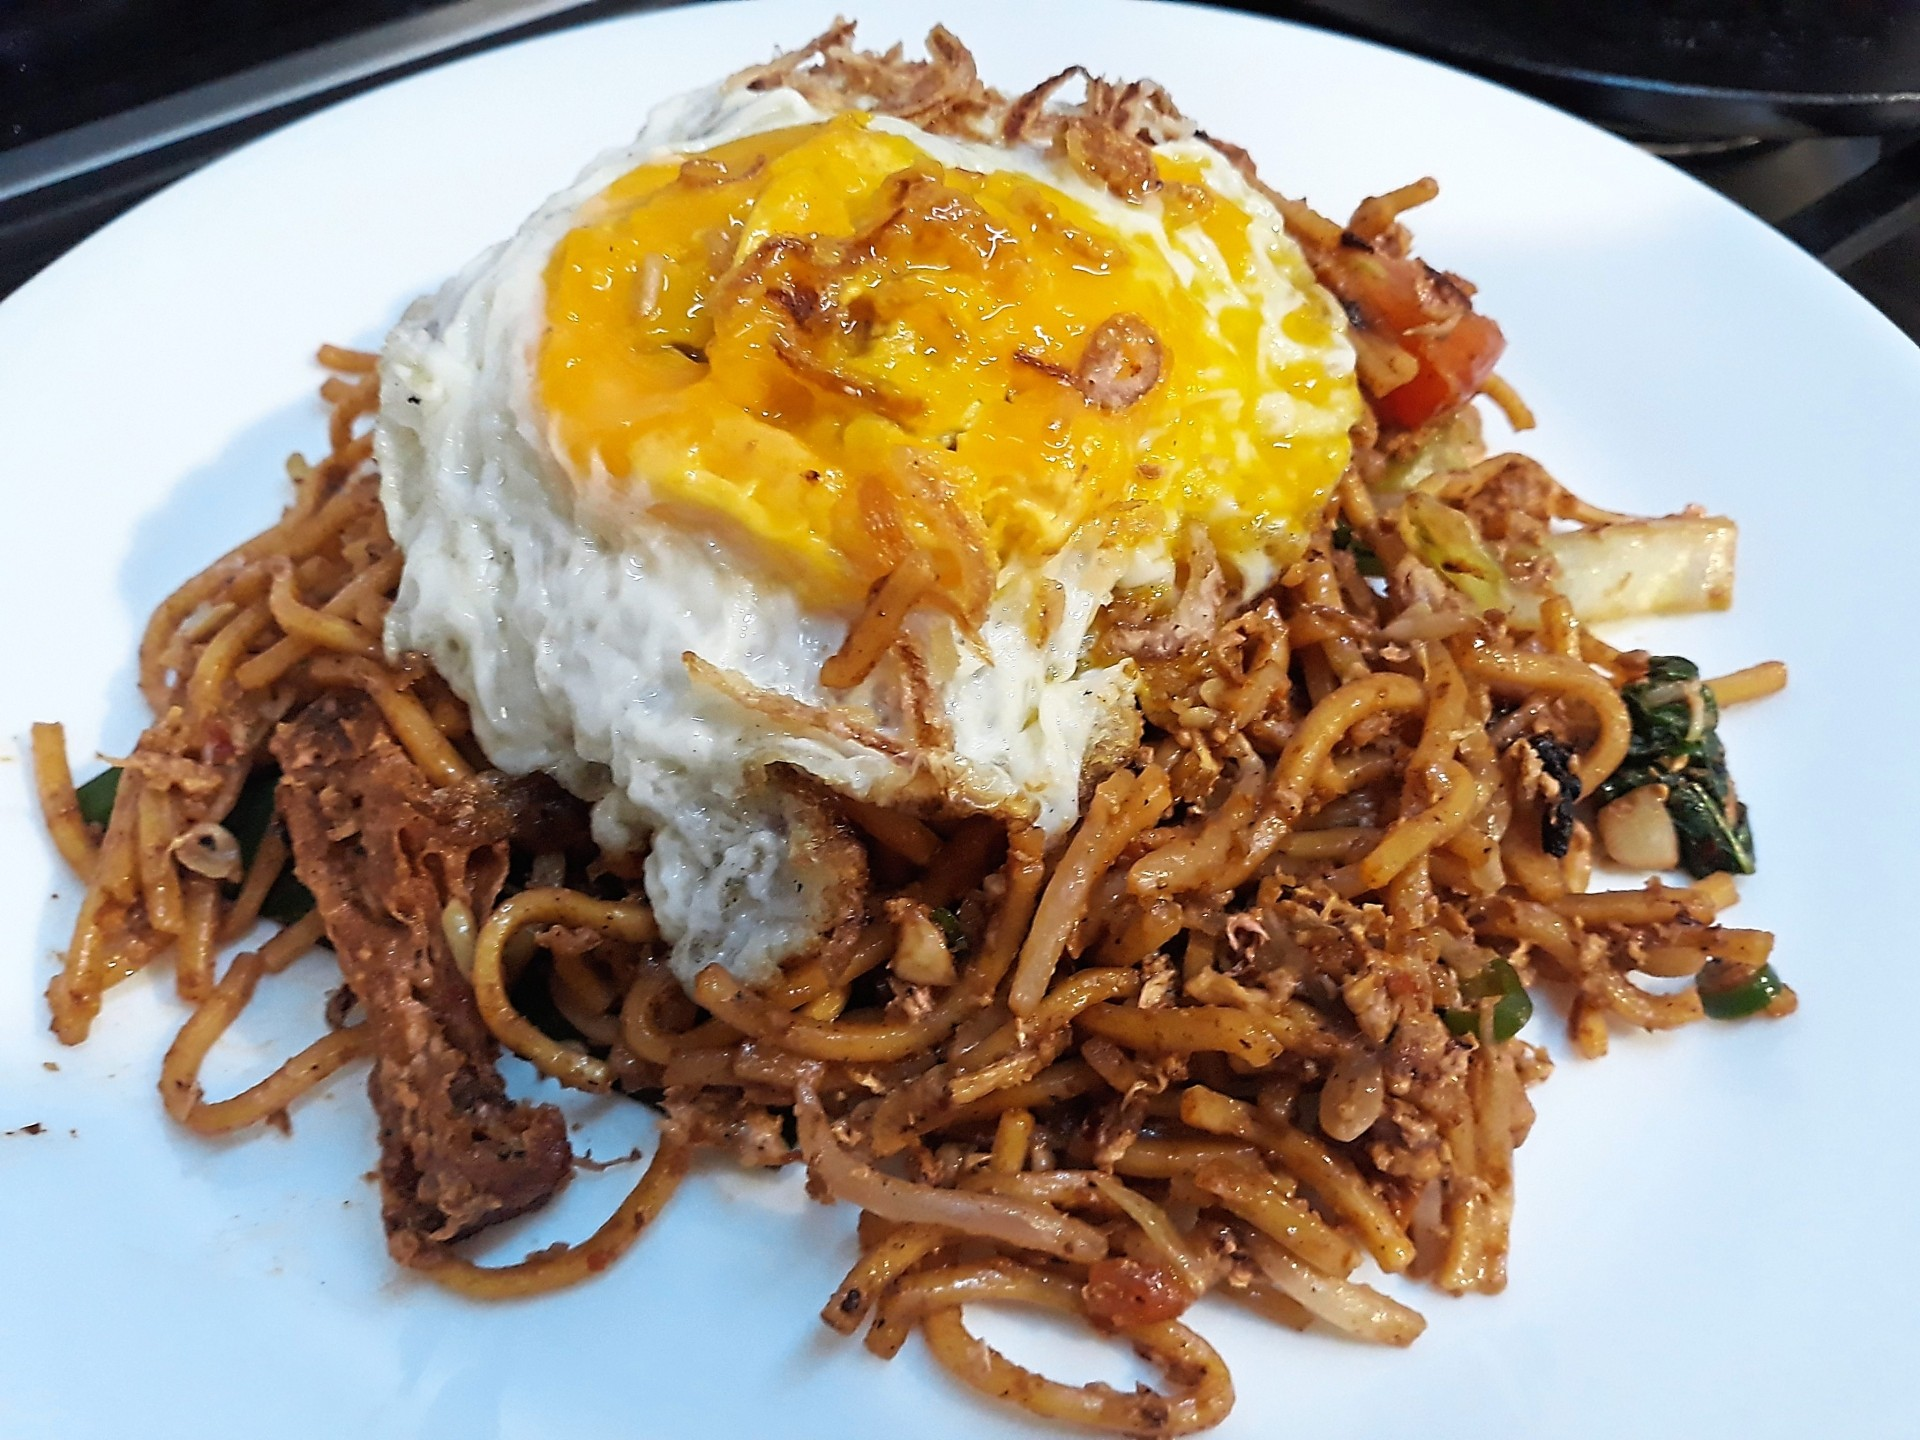 The mee goreng at Cobra Club comes with a good amount of fritters, vegetables and a fried egg.